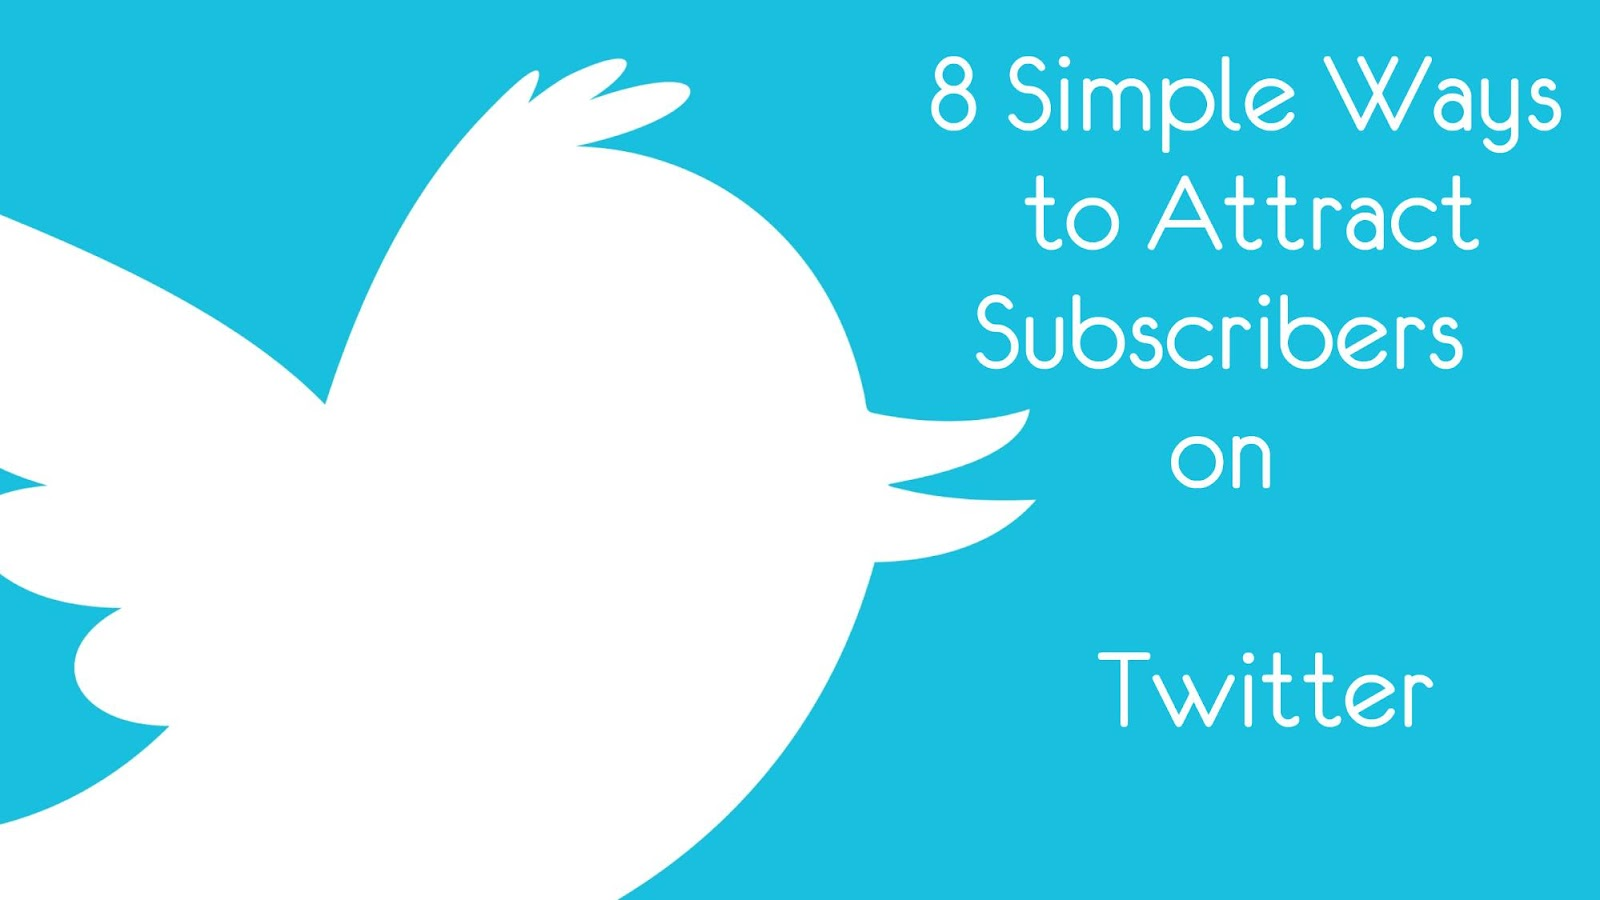 Simple Ways to Attract Subscribers on Twitter